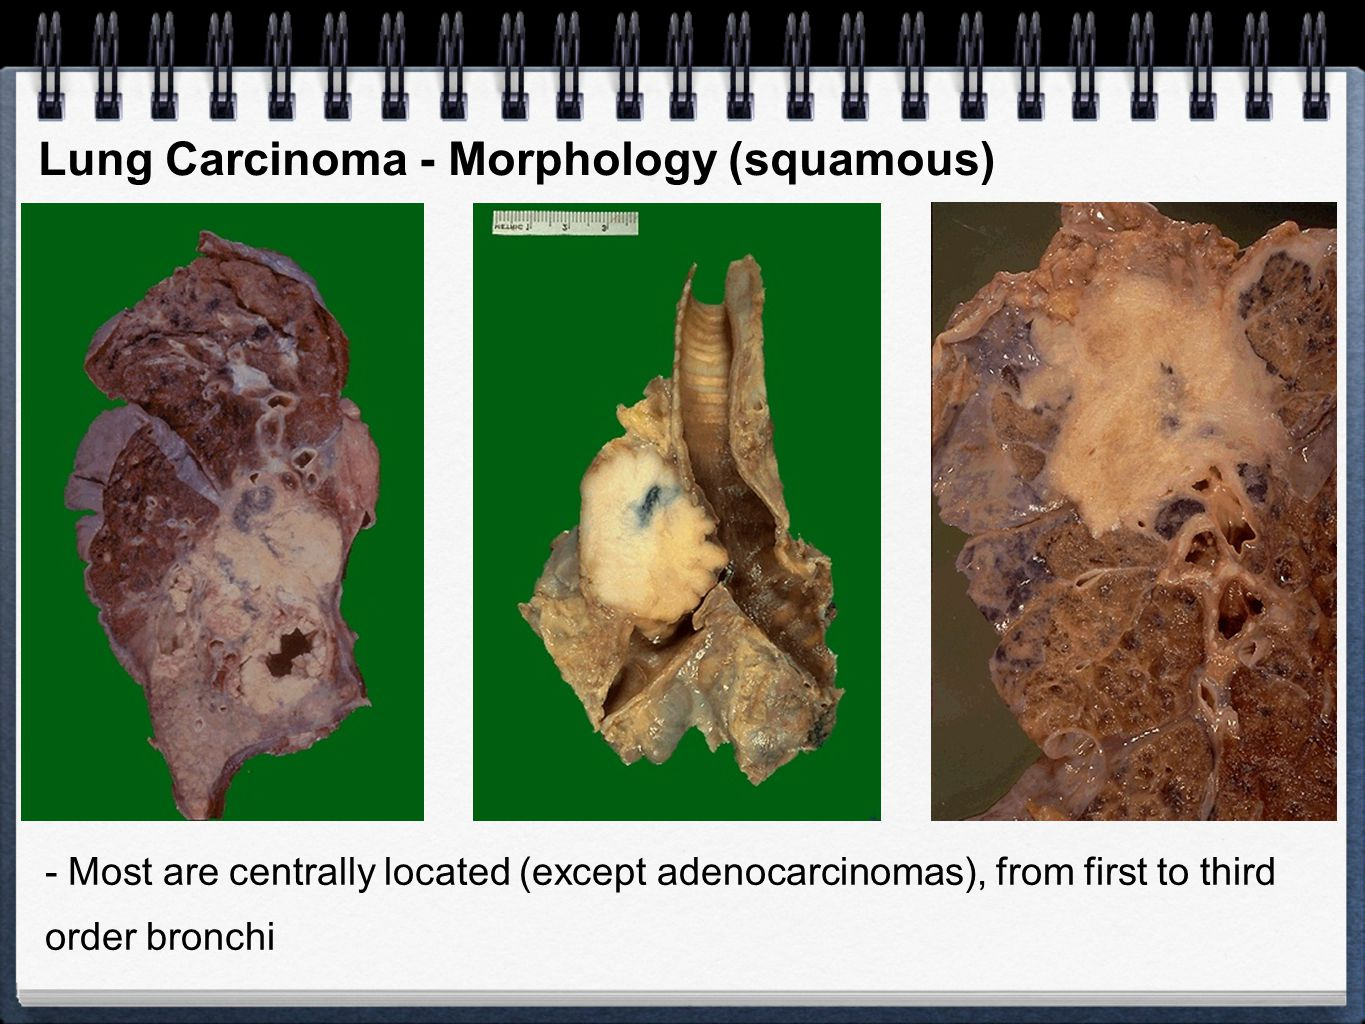 Lung Carcinoma - Morphology (squamous)